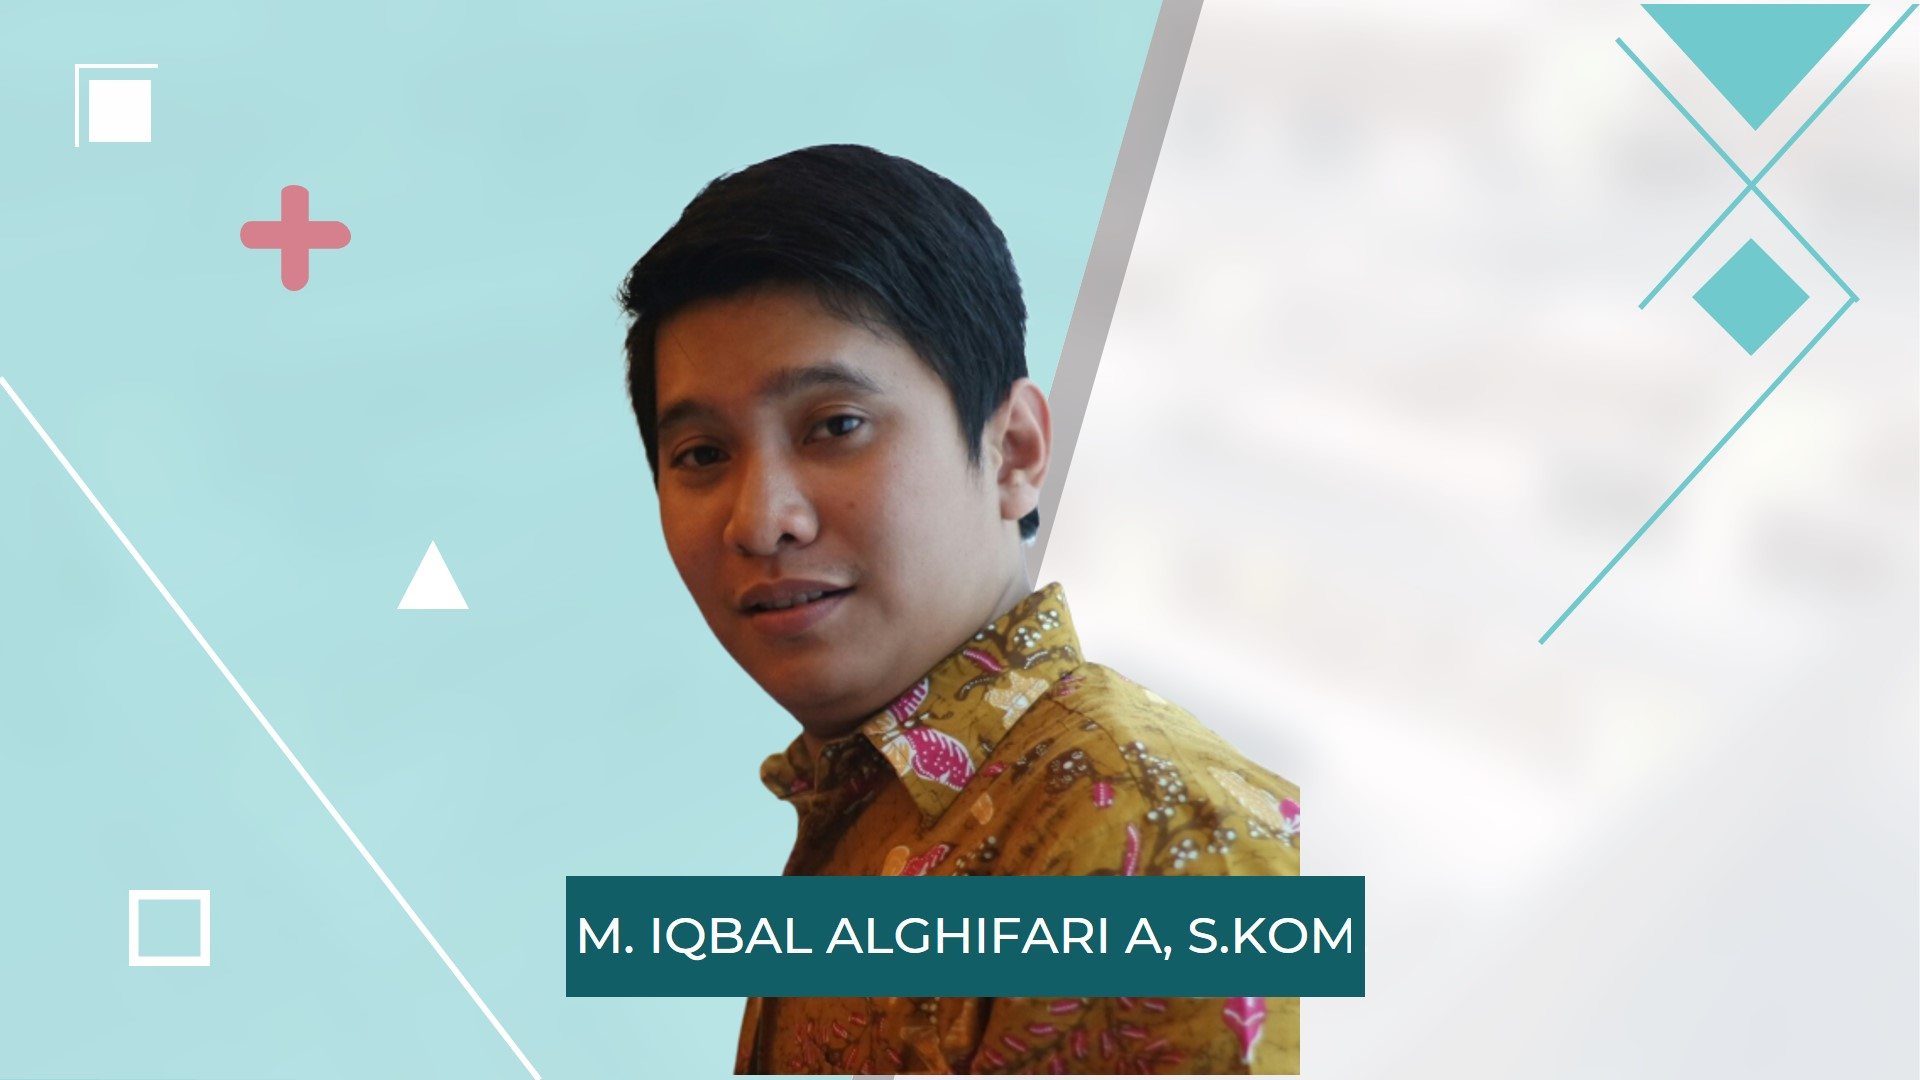 Profil Iqbal Alghifari - Blogger, Digital Marketer & IT Konsultan